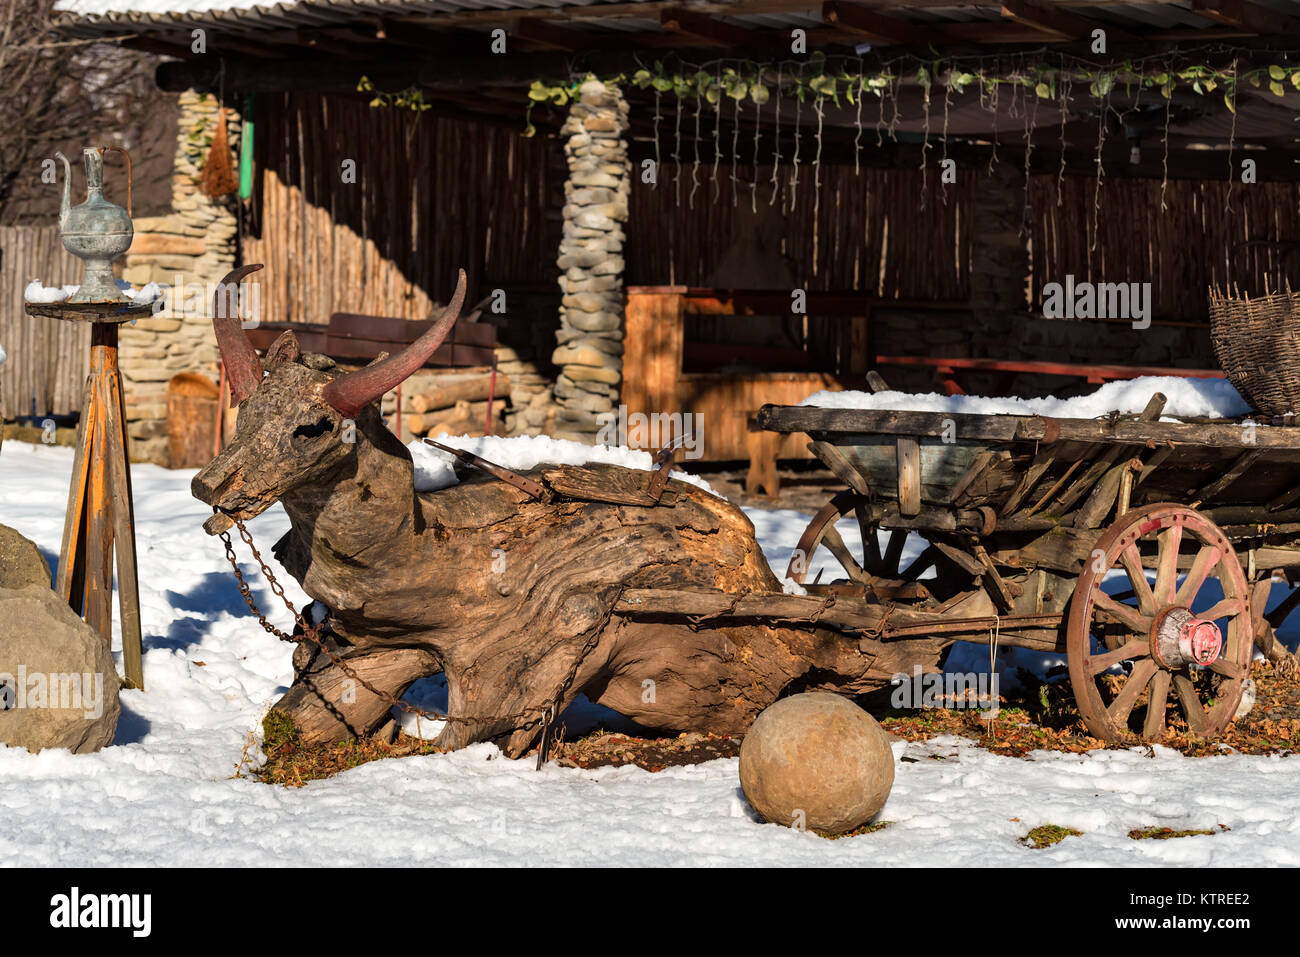 Decorative wooden carriage outdoors - Stock Image